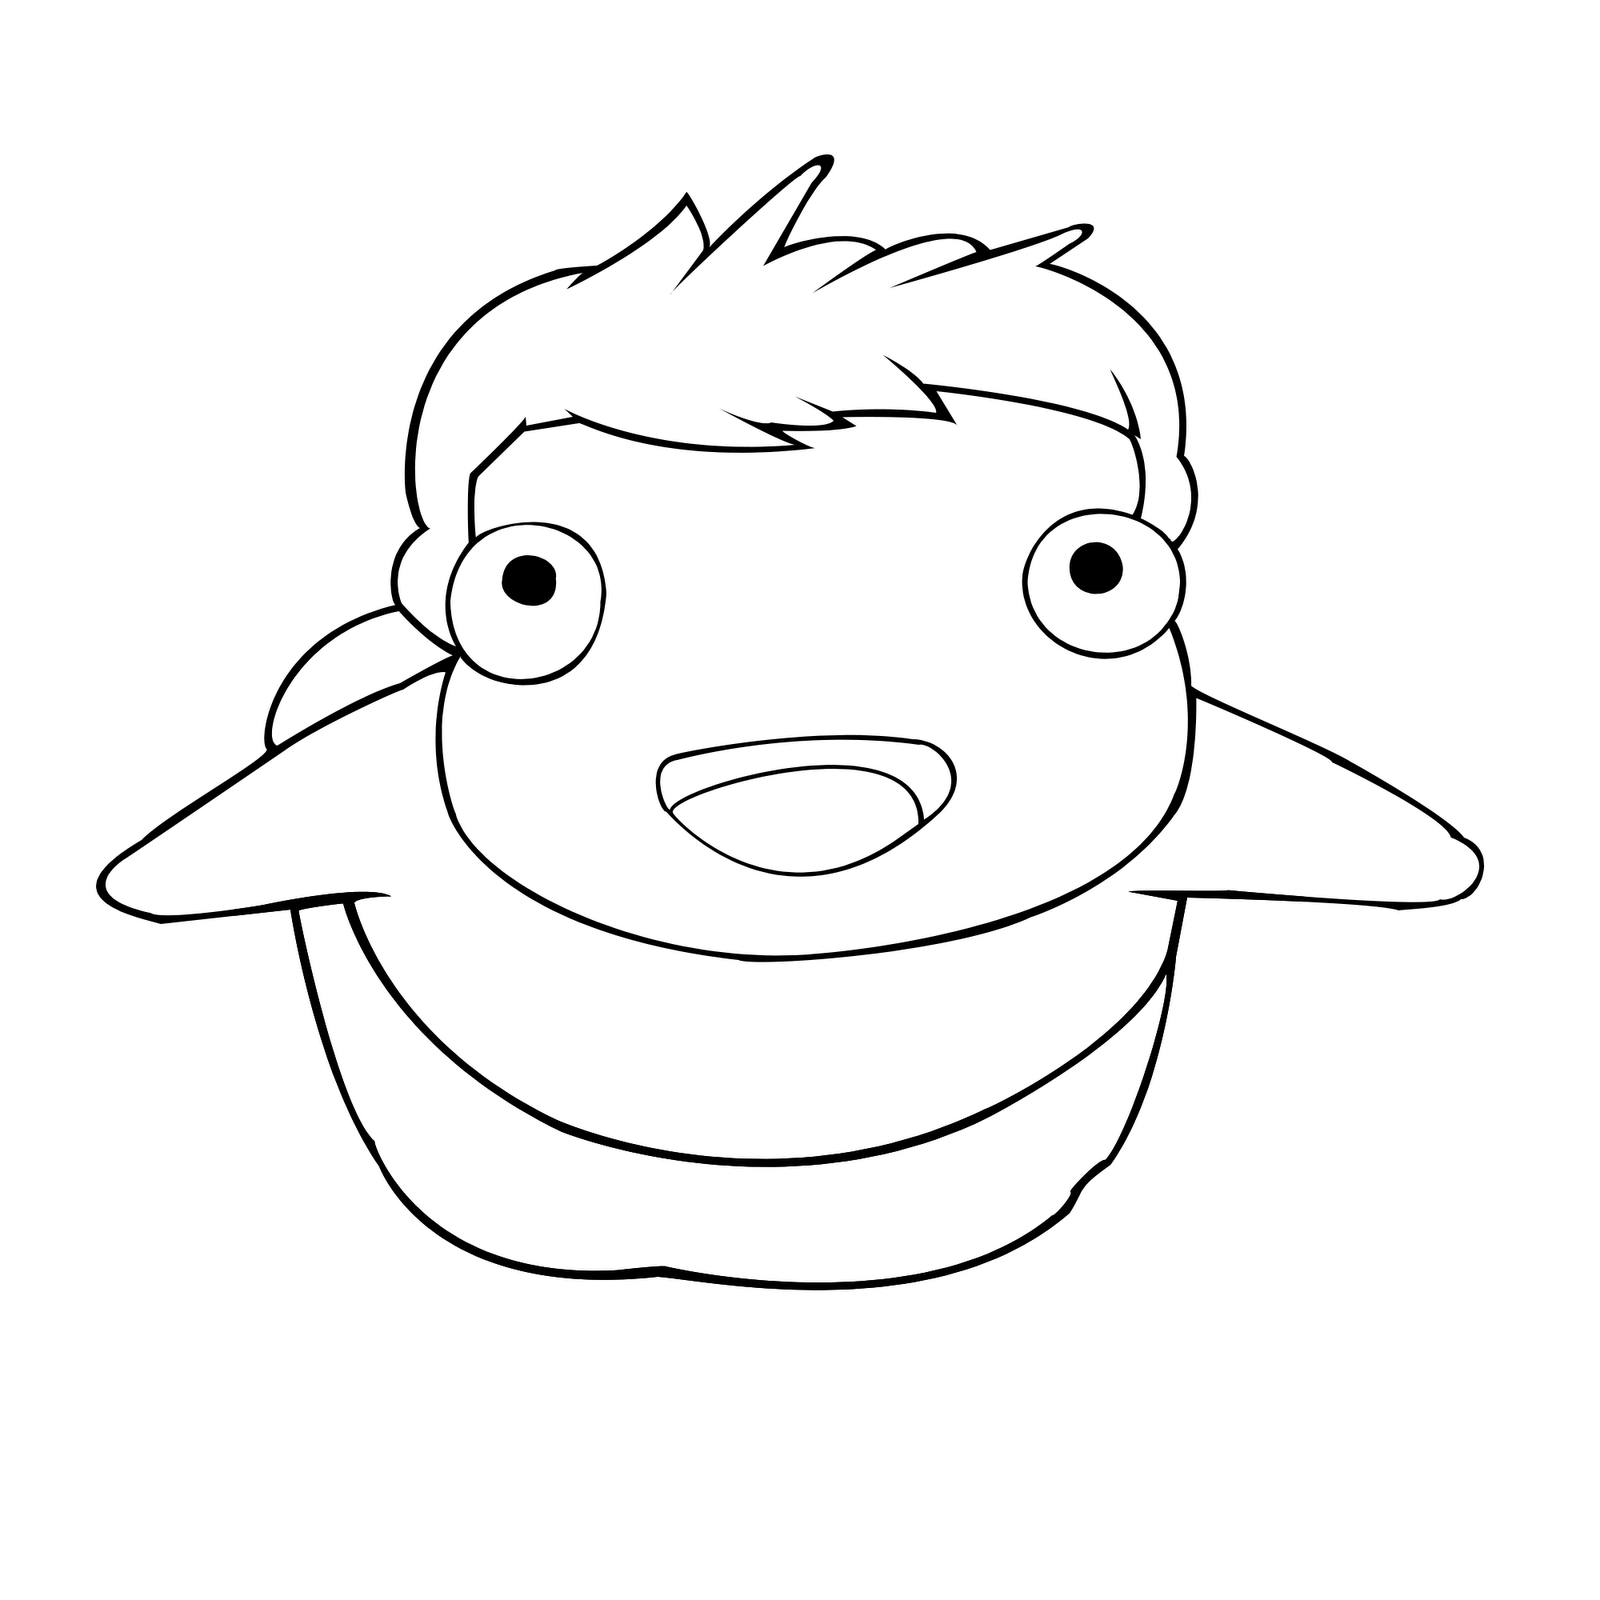 Coloring pages of ponyo by oliver free printables for Ponyo coloring pages